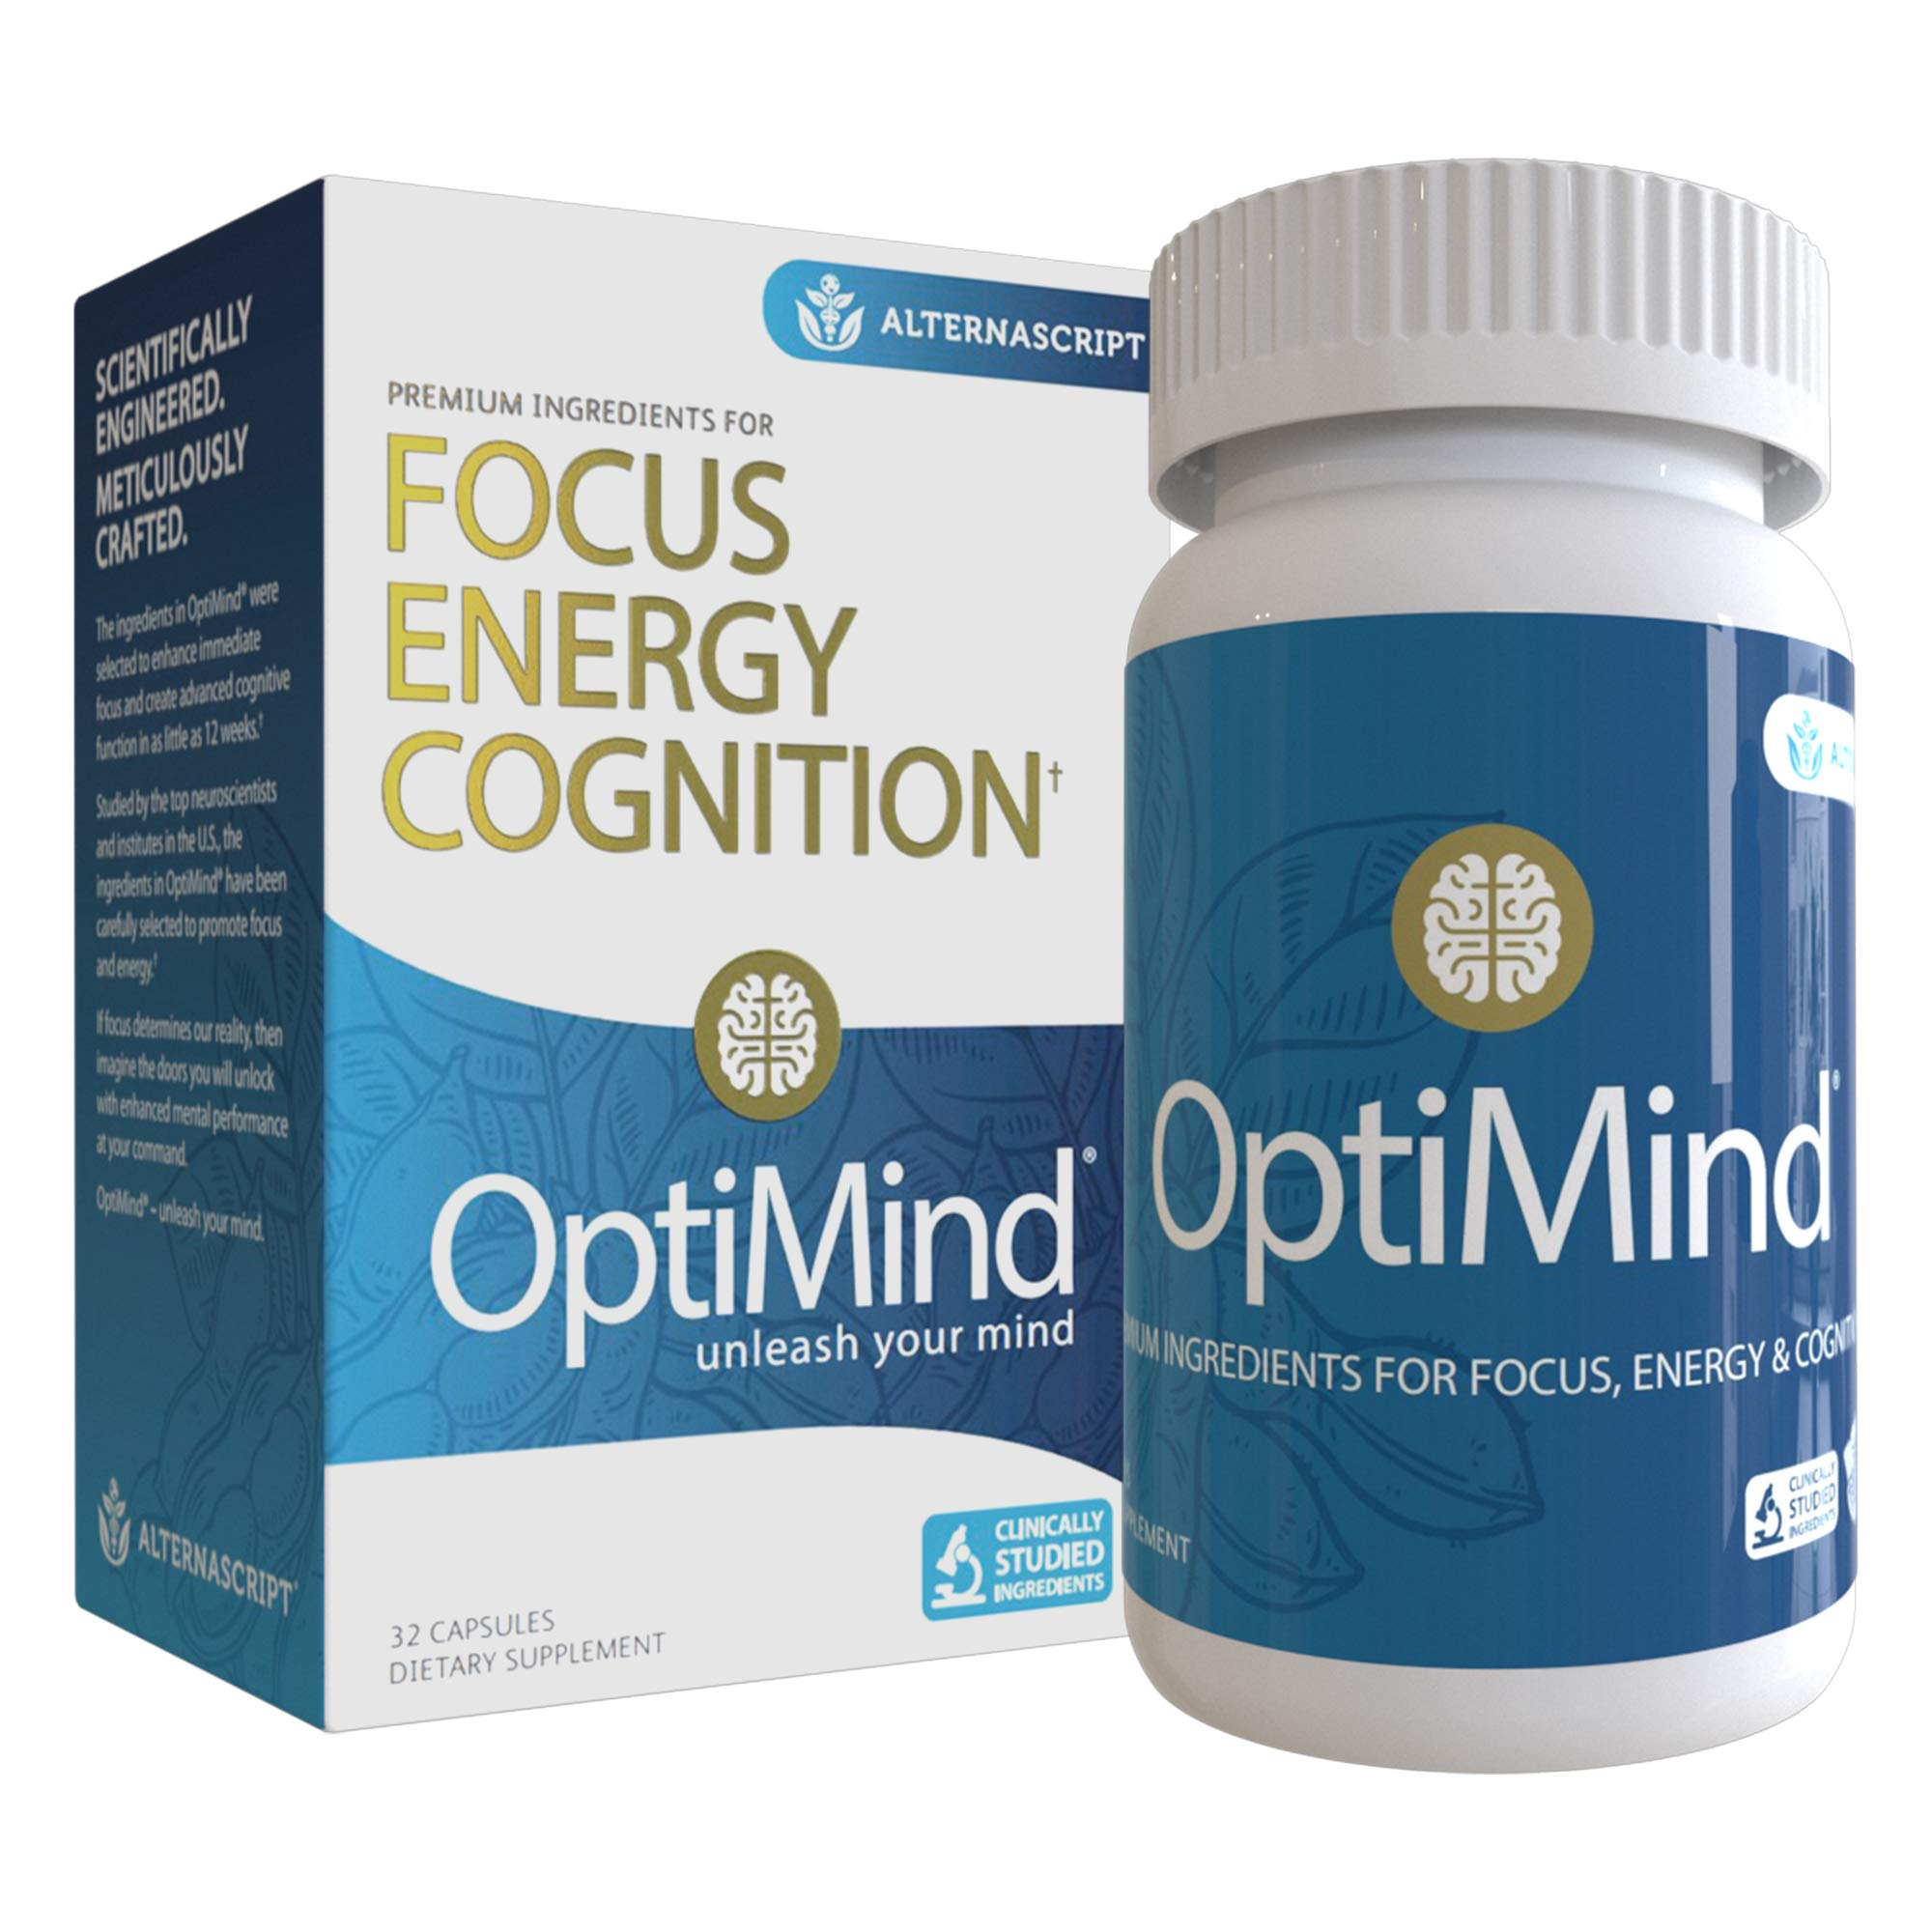 Alternascript OptiMind Nootropic Brain Supplement, Enhance Focus and Energy, As Seen on Netflix, 1-Pack (32 Ct) by Optimind